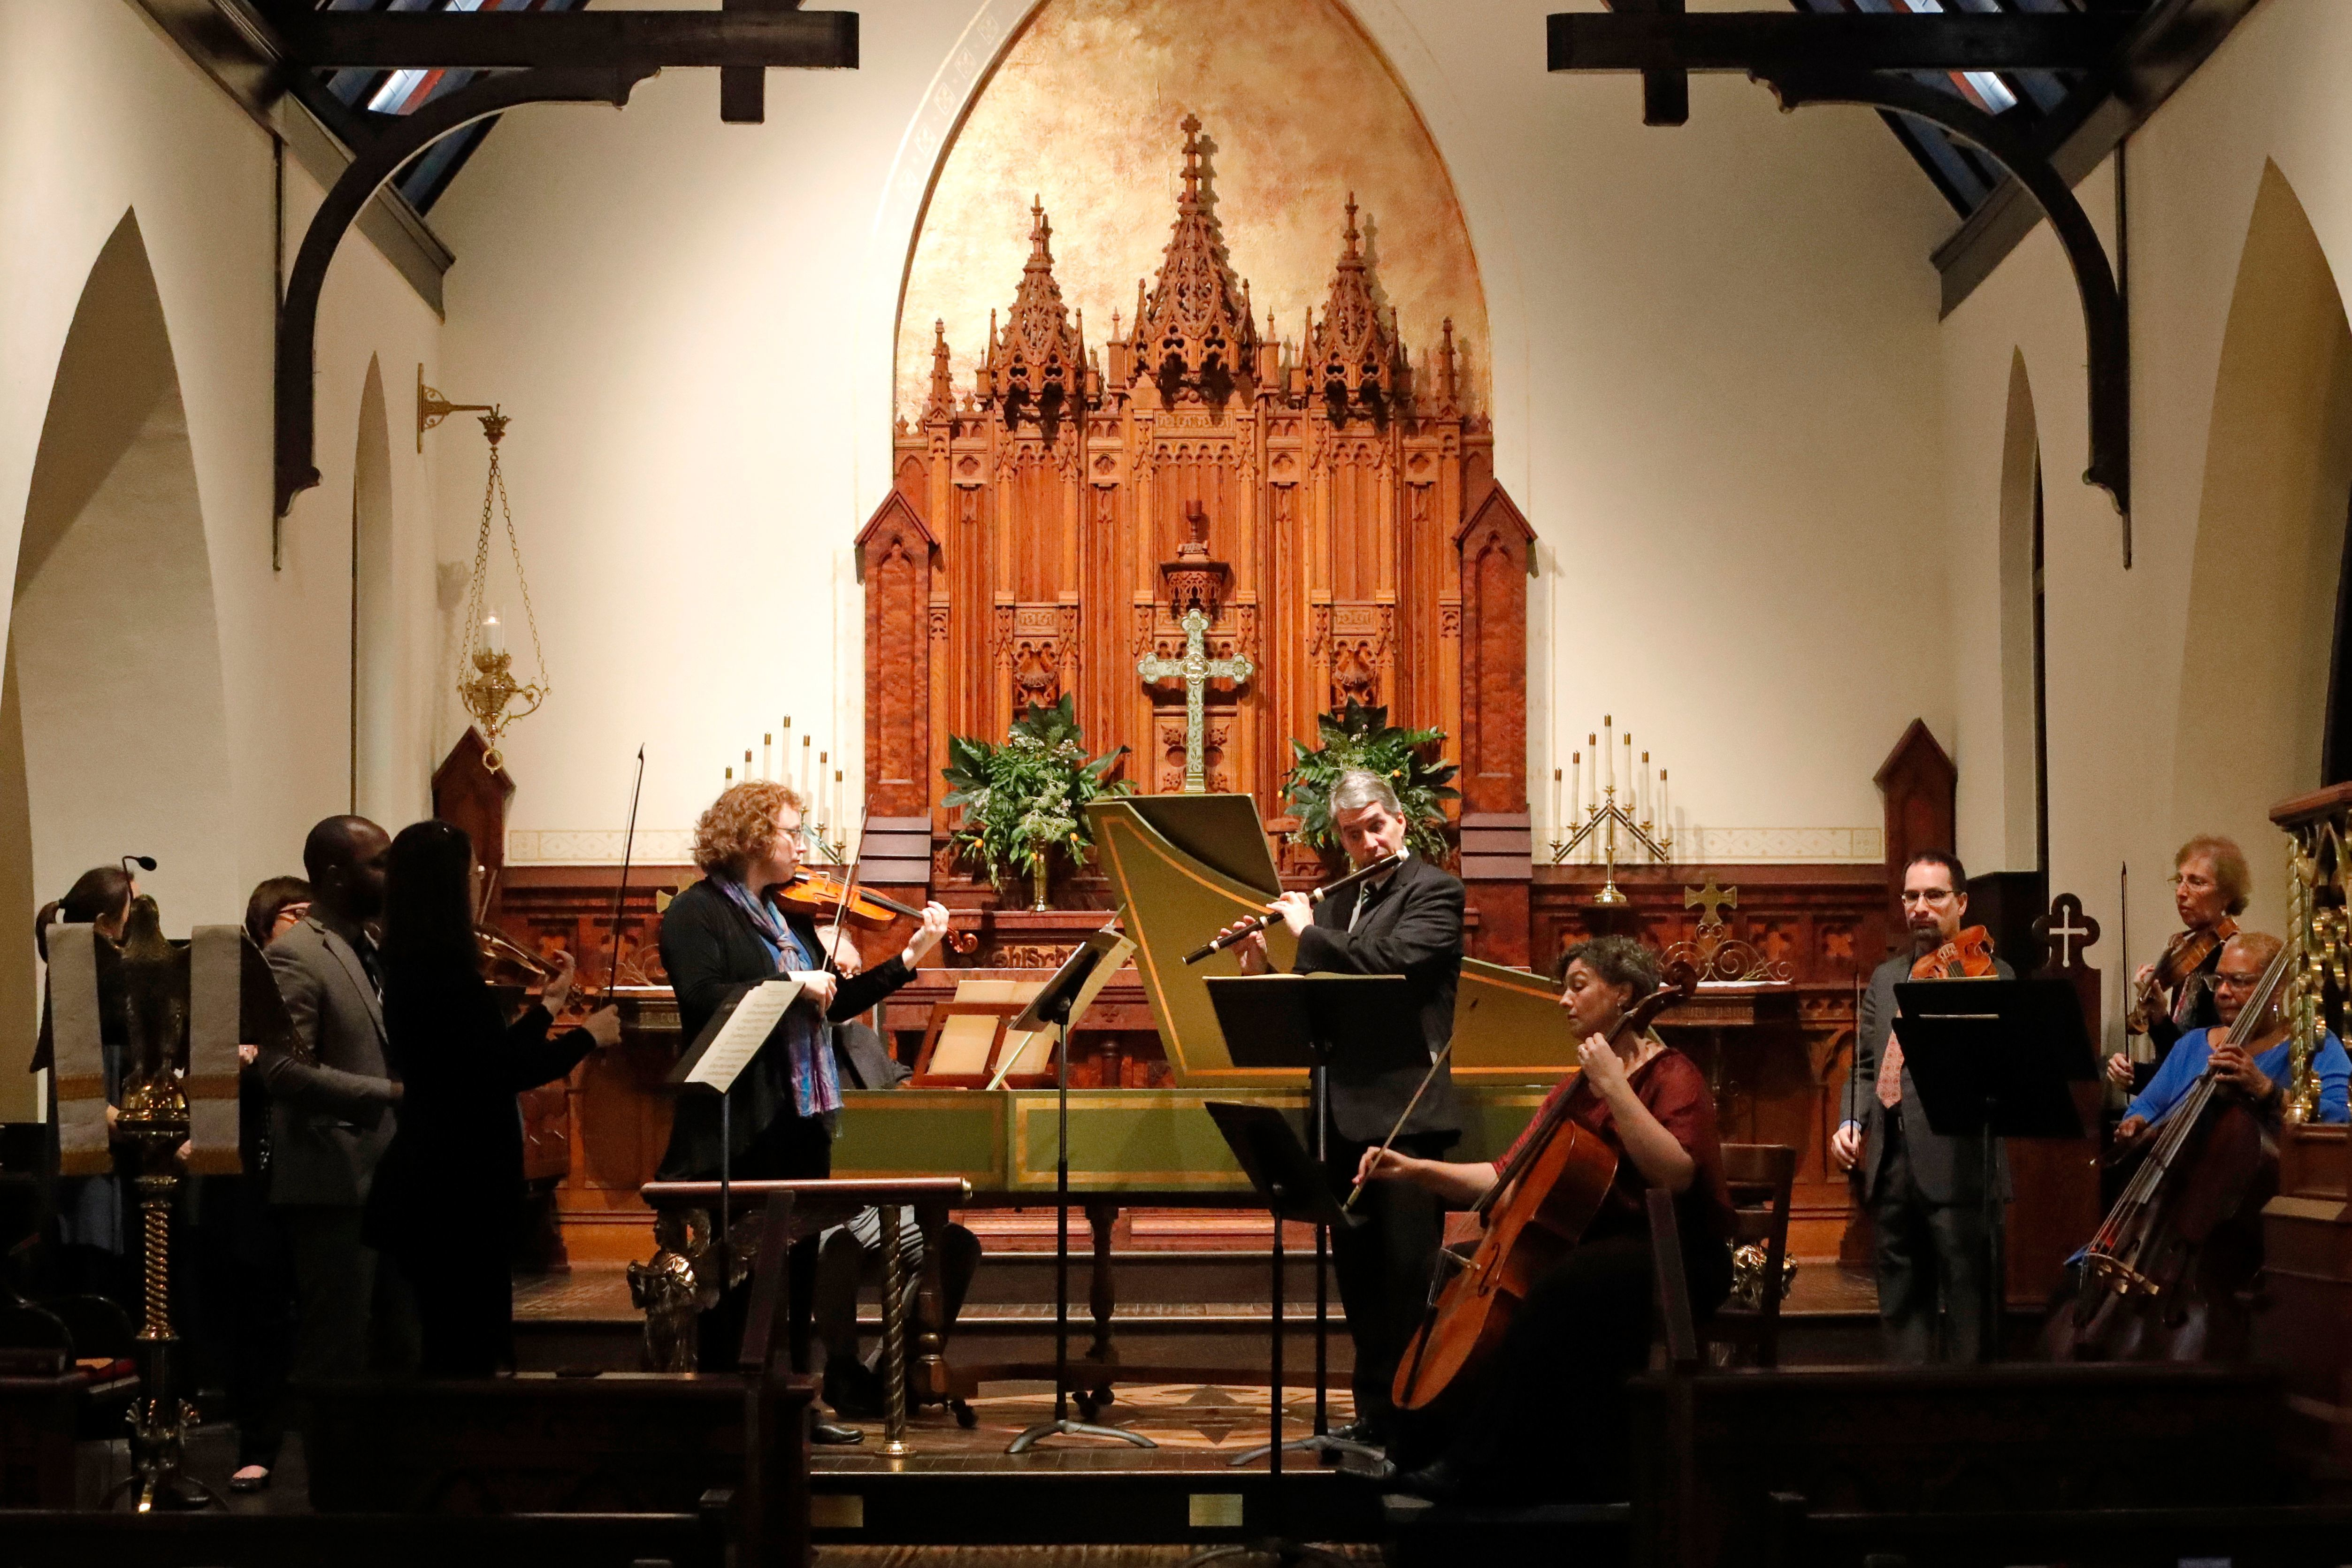 The Tallahassee Bach Parley kicks off its 38th concert season Sunday.